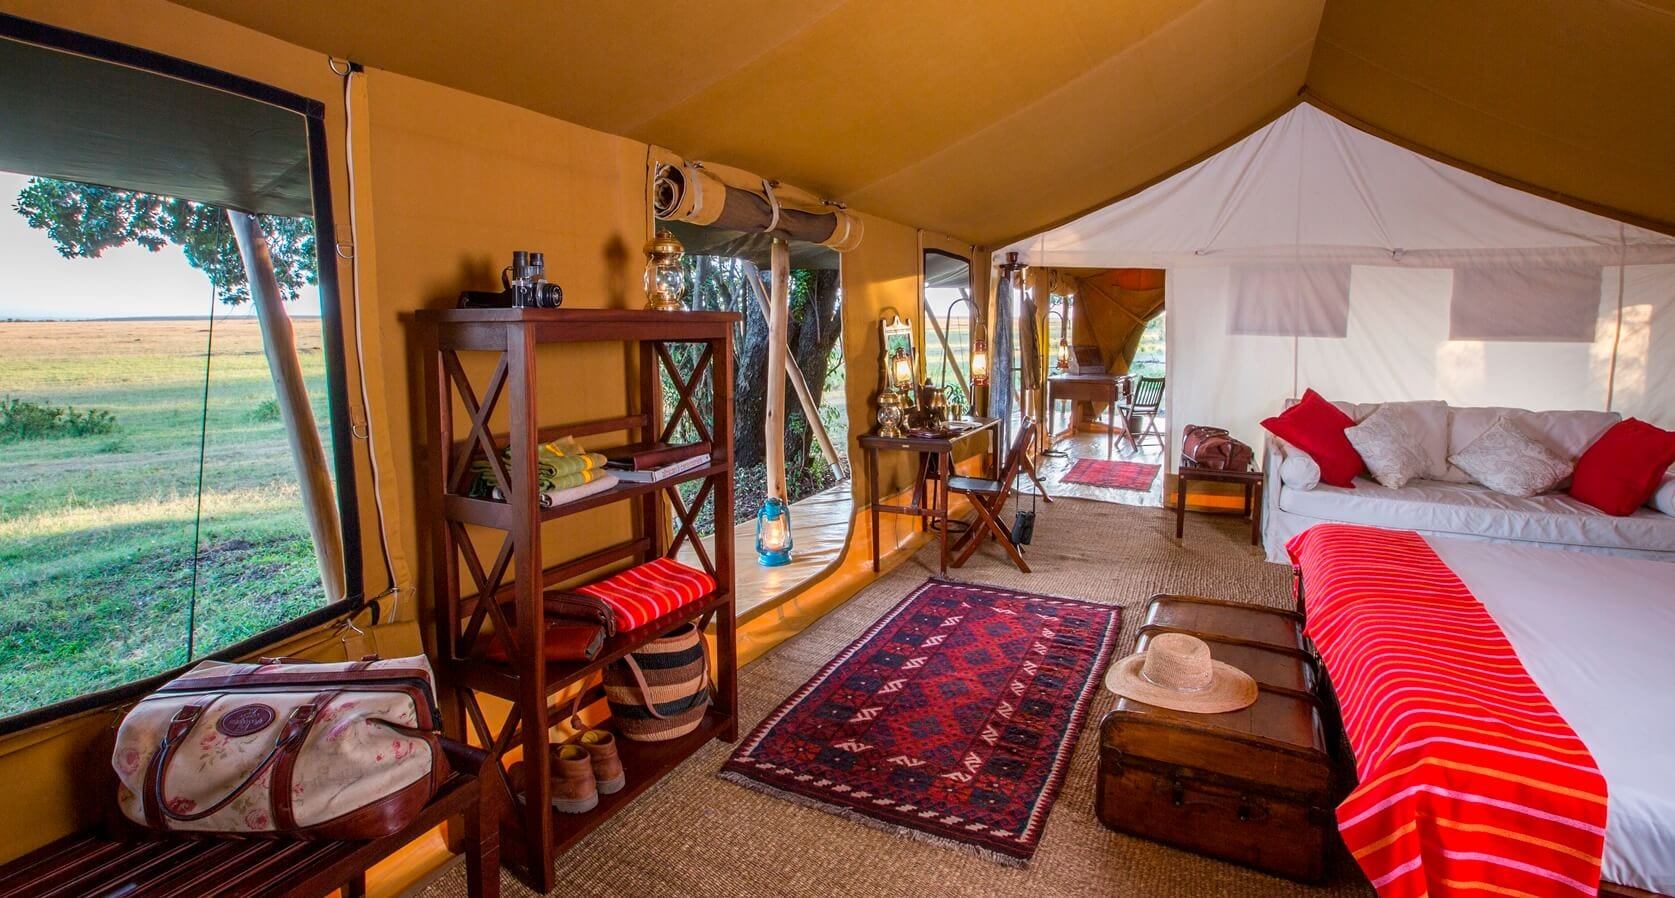 elephant_pepper_camp_-_accommodation_-_family__honeymoontent_-_bedroom_csilverless-3